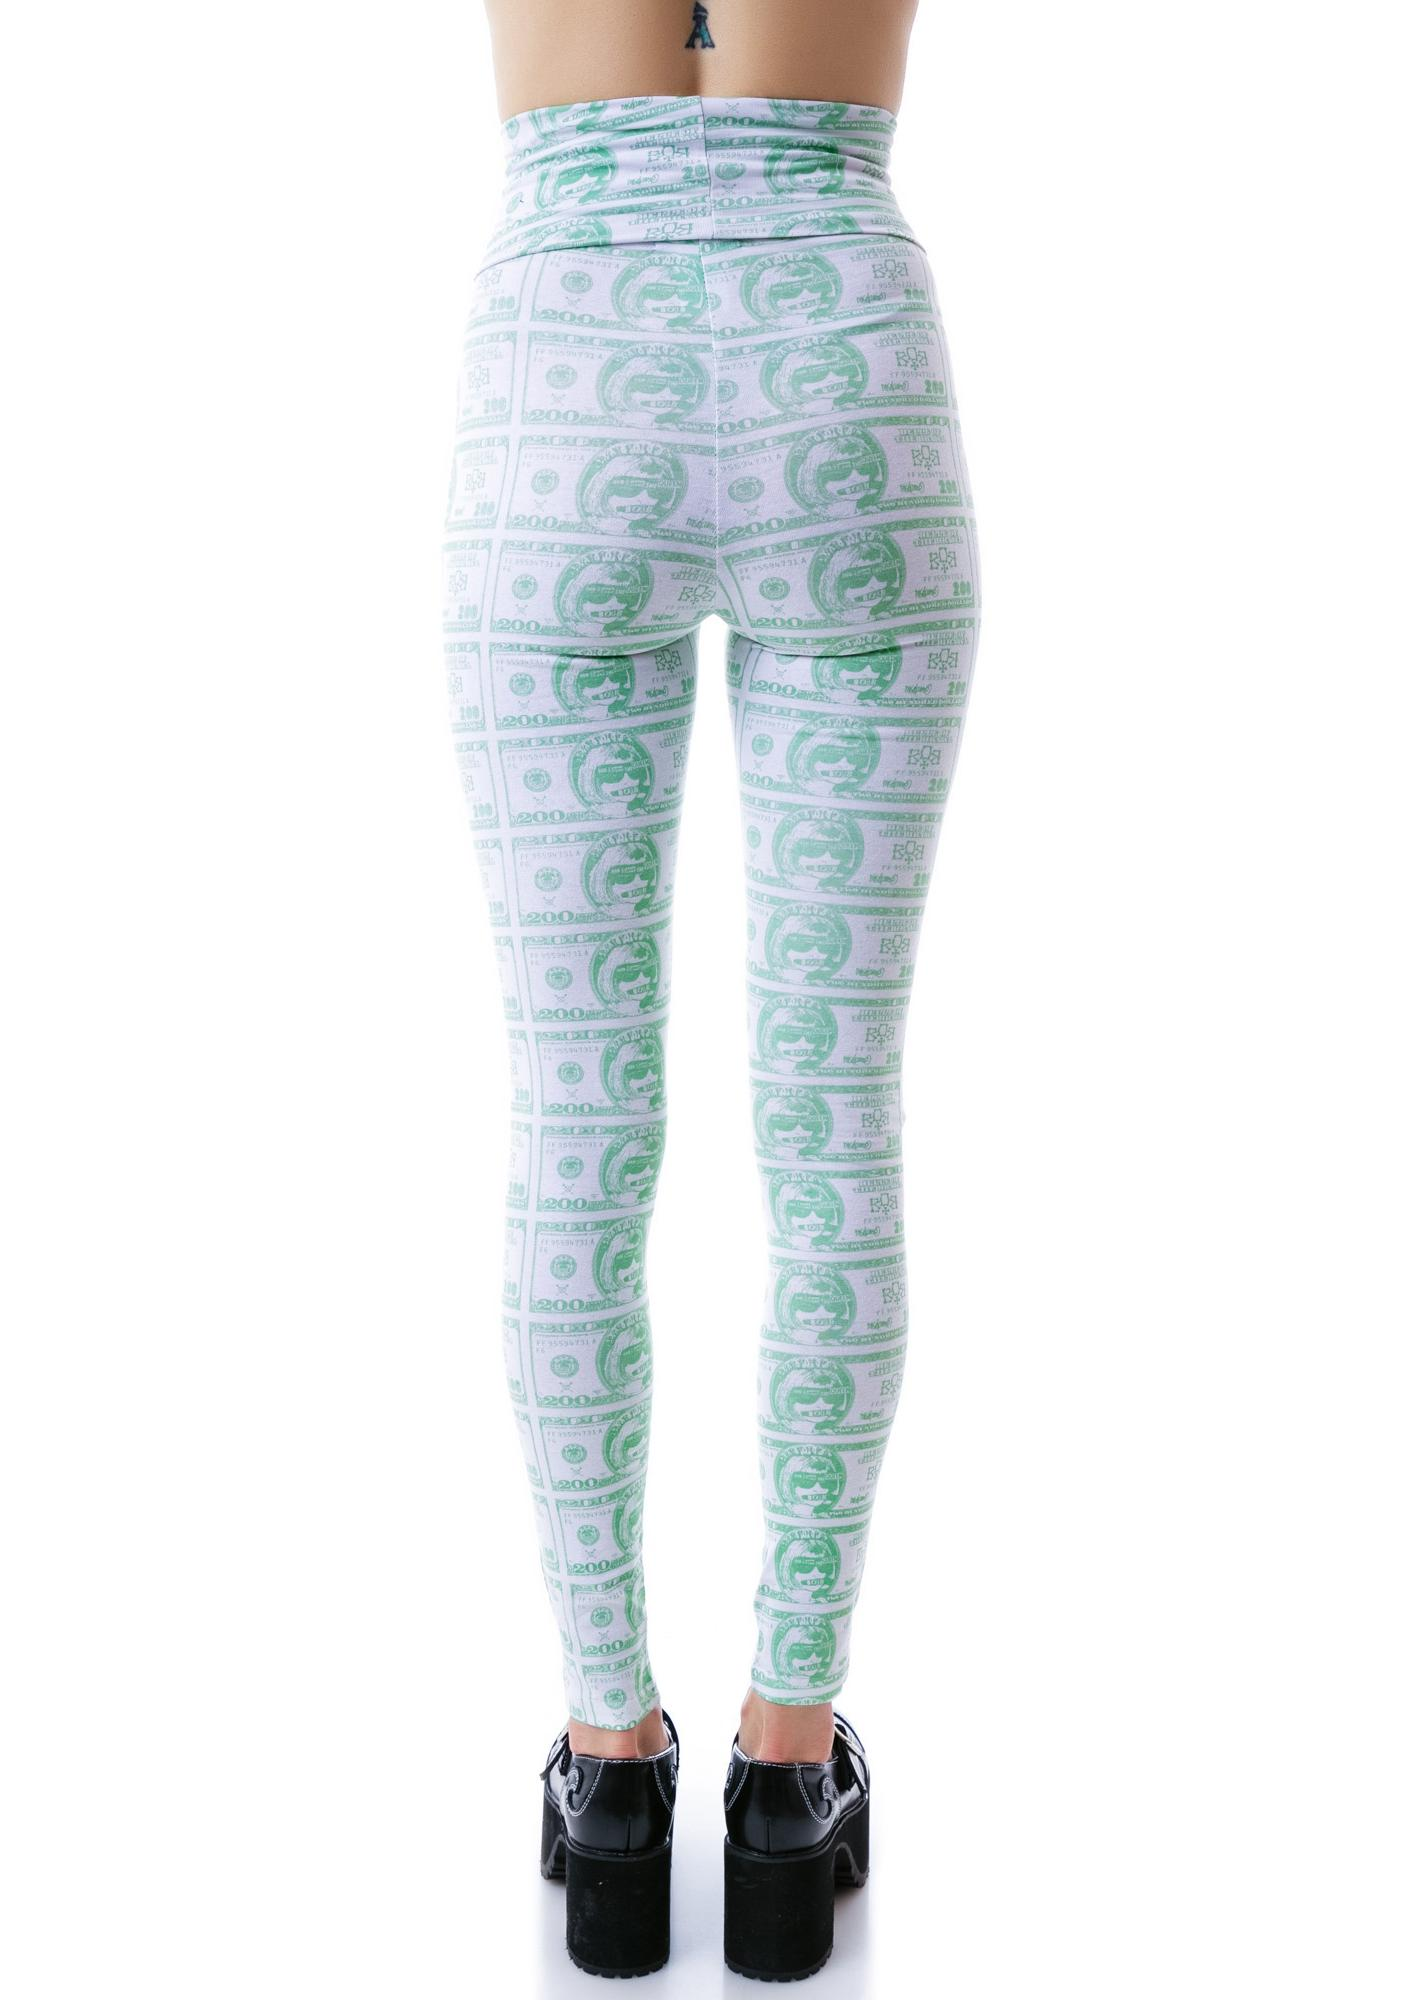 HLZBLZ x Belle of the Brawl Endz Spandex Leggings